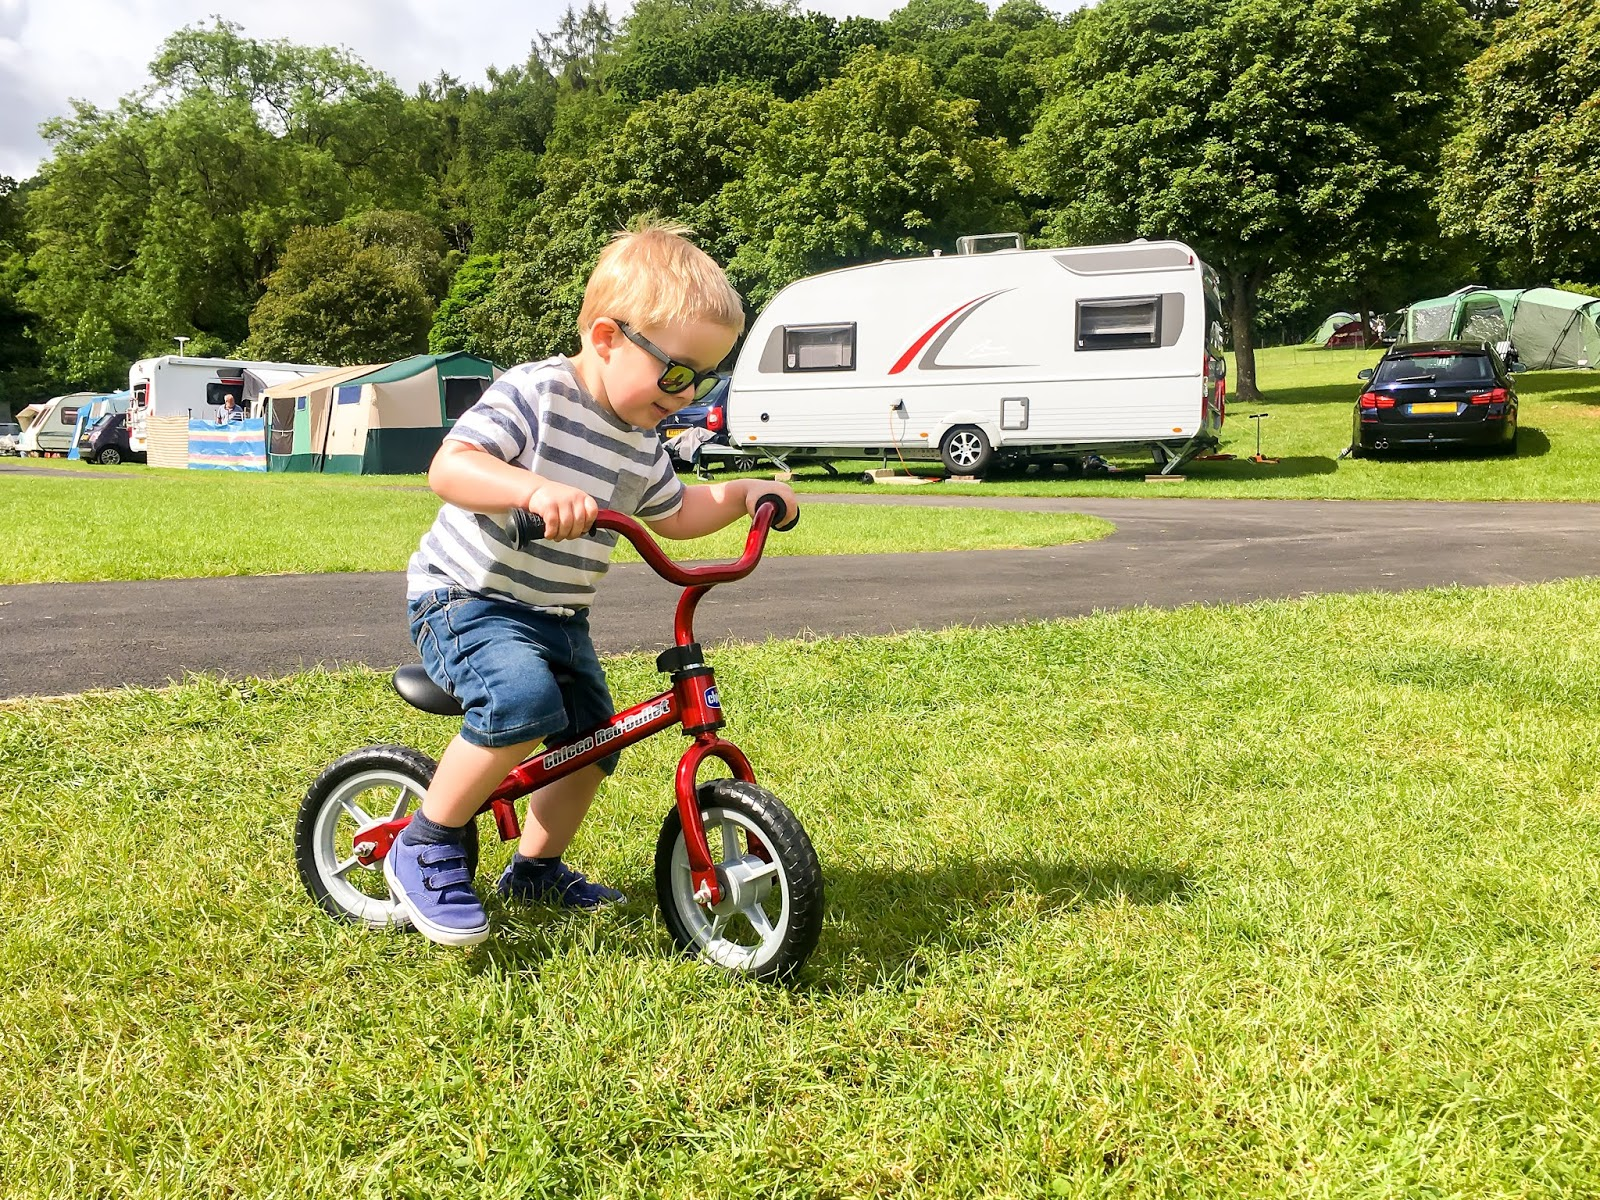 young boy wearing sunglasses and riding a red balance bike across a caravan site